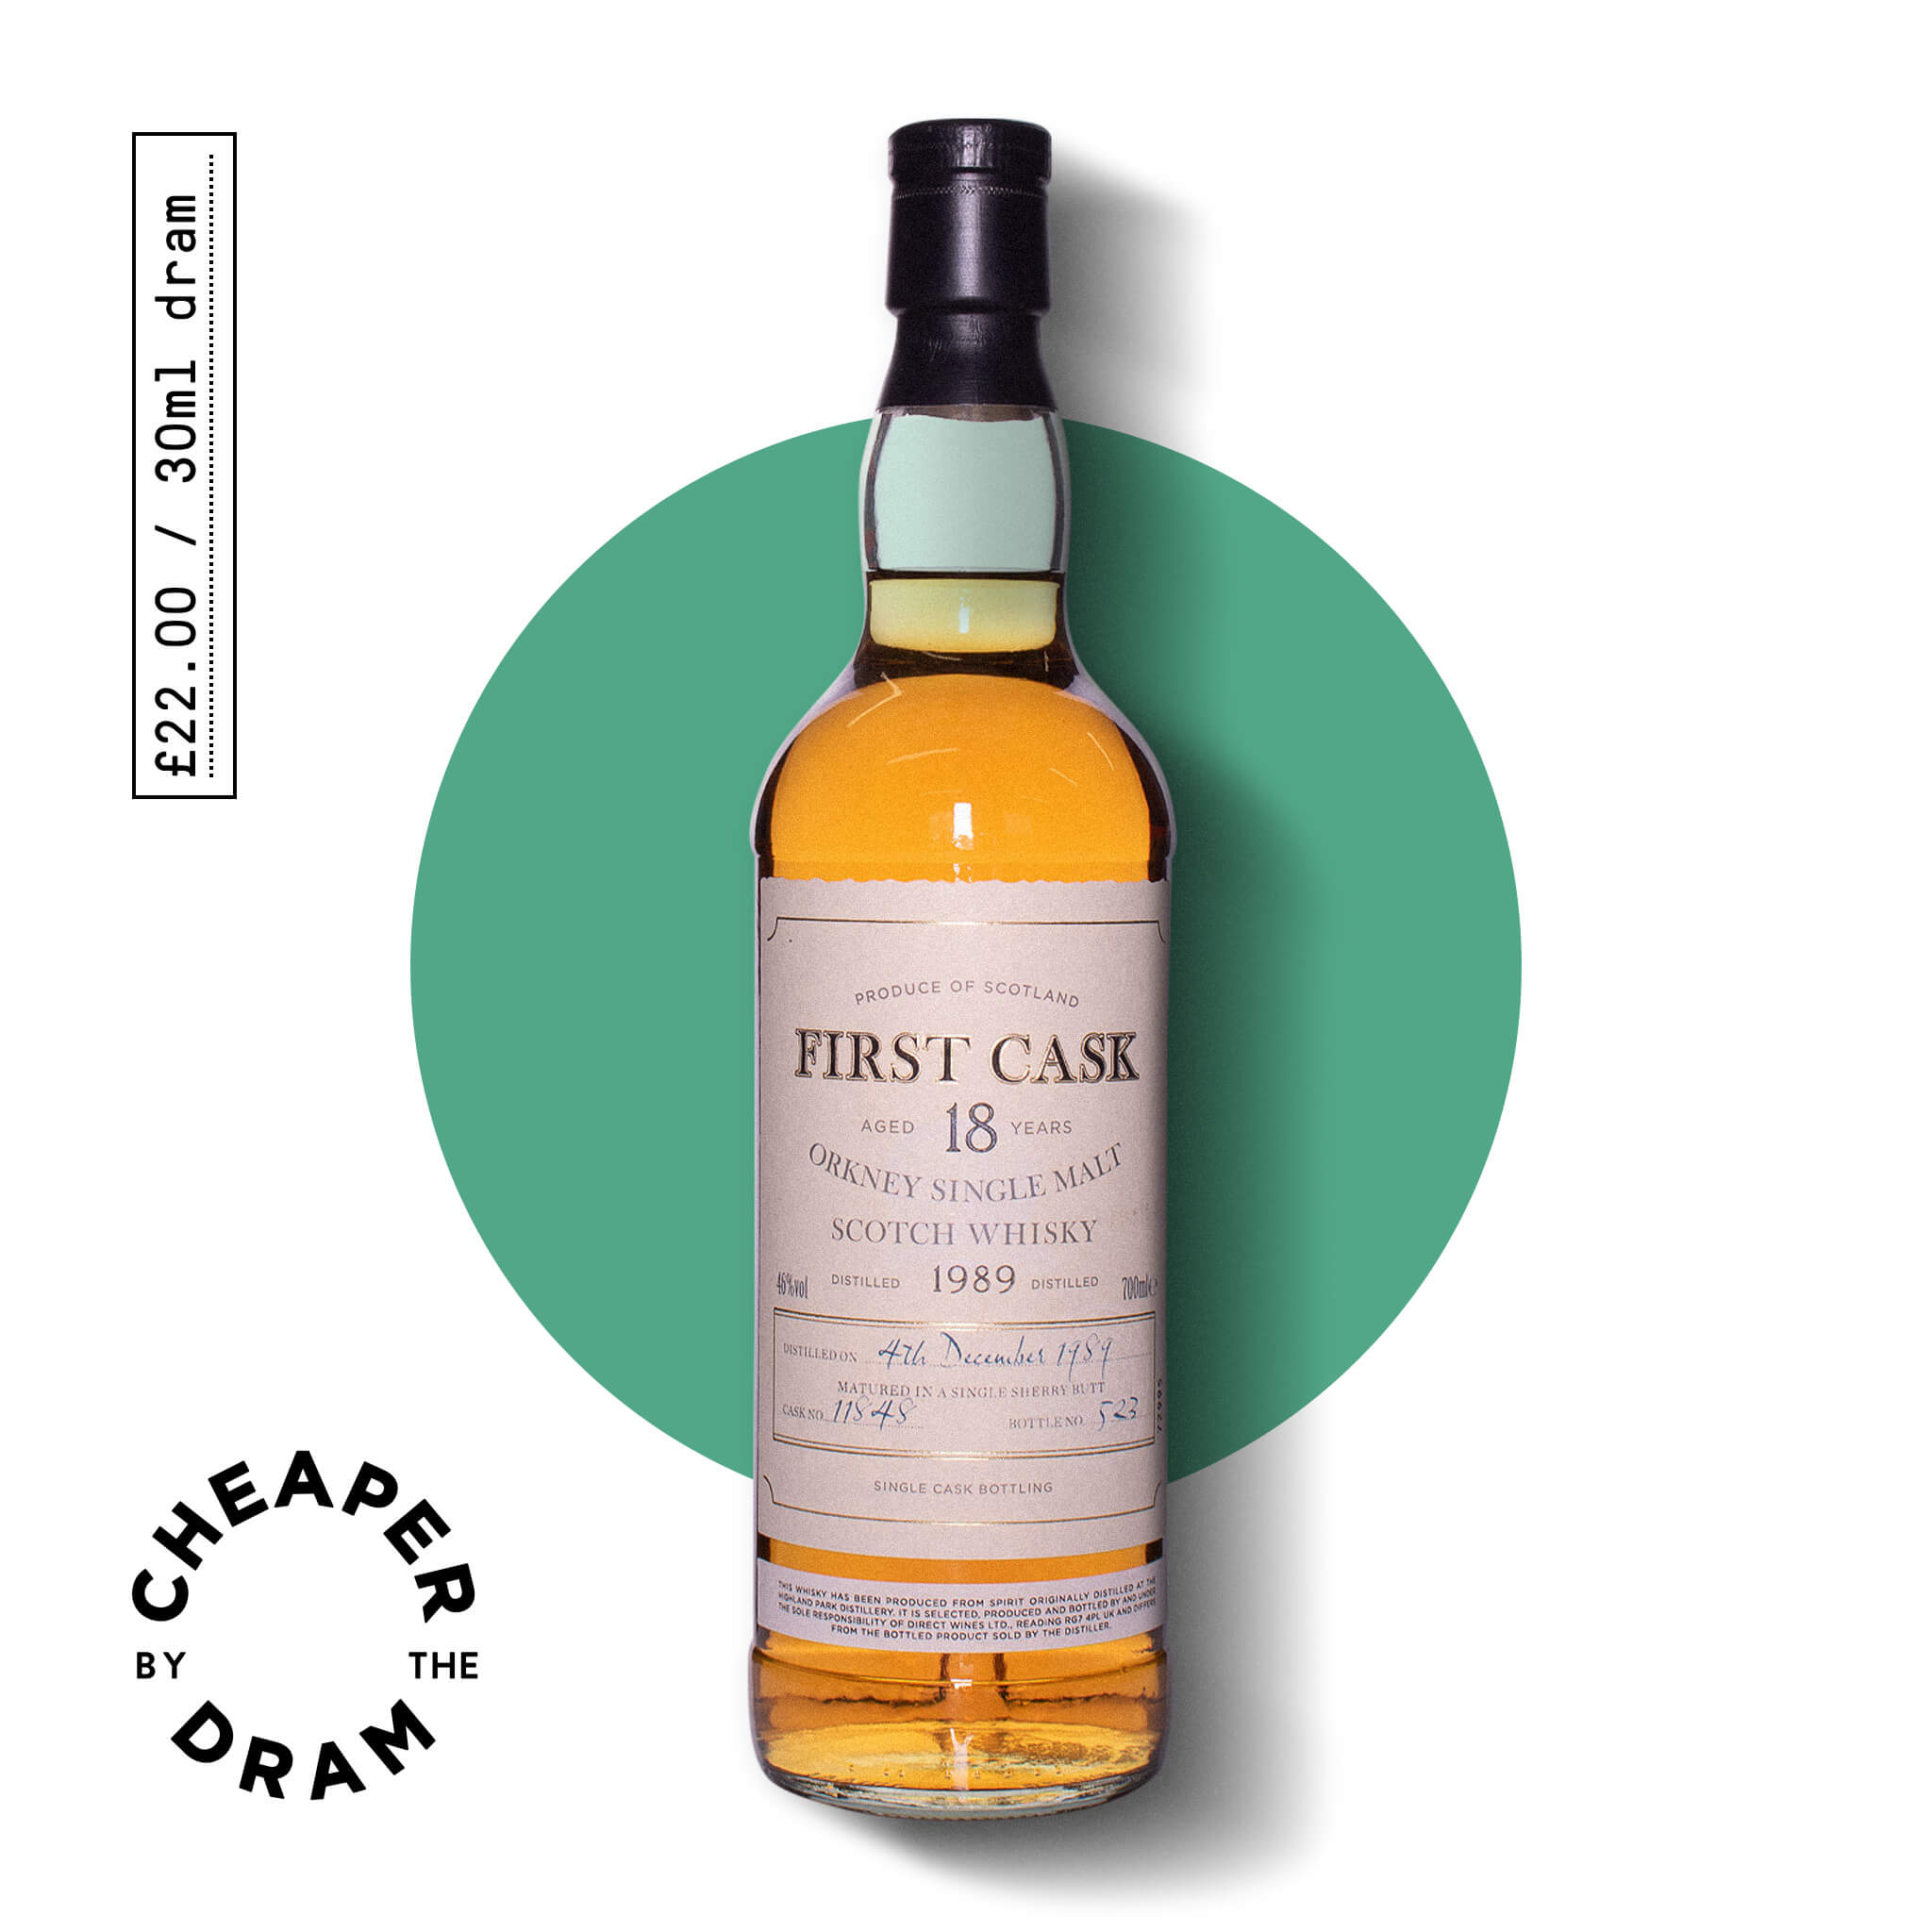 A bottle of CBTD NO.14 Highland Park 1989 18 Year old bottled by First Cask